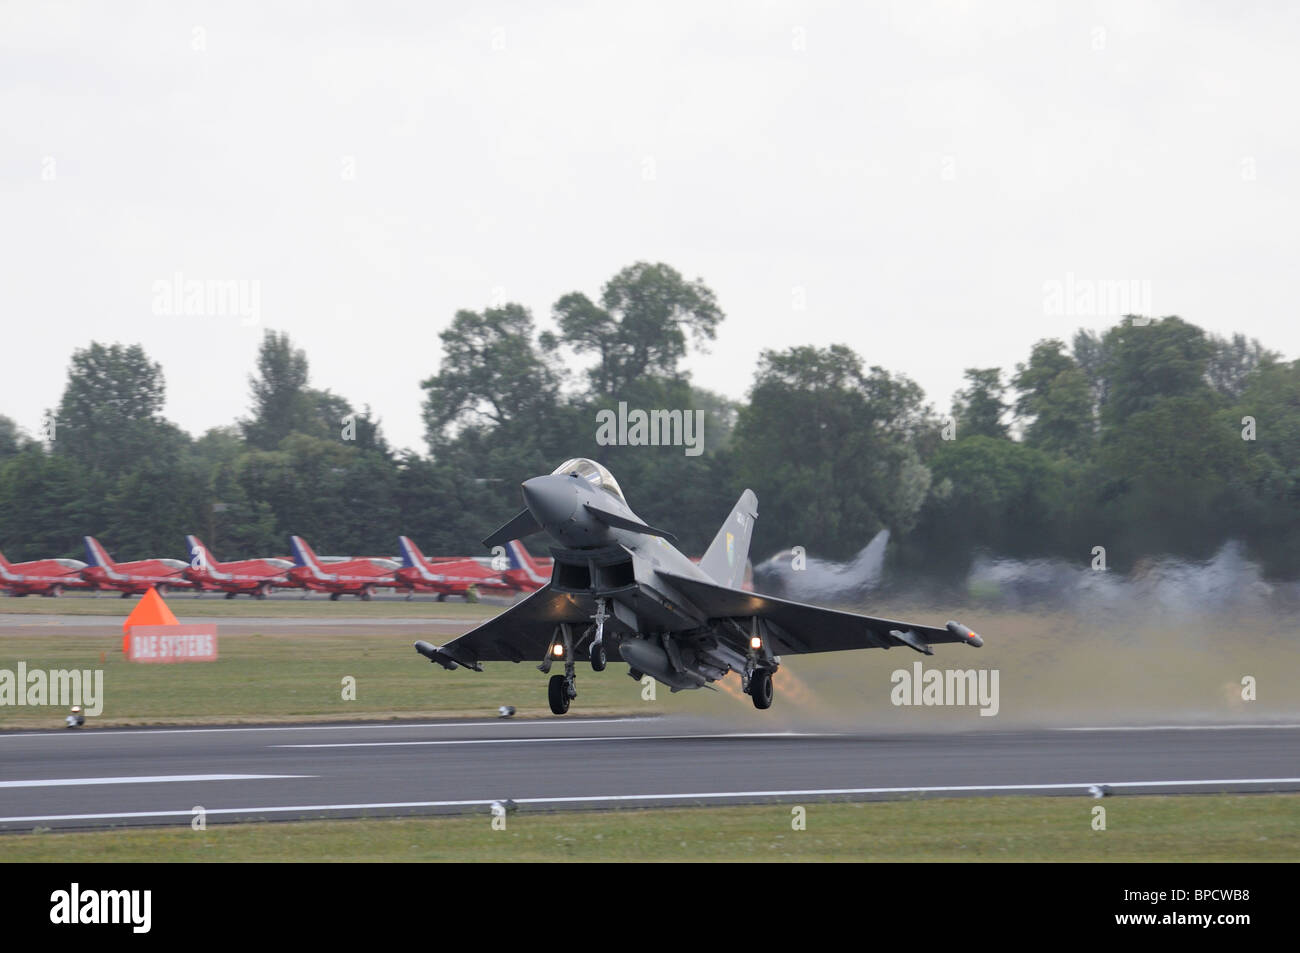 Eurofighter Typhoon F2 from Royal Air Force 29(R) Squadron RAF Coningsby takes off to rehearse its display at the Stock Photo